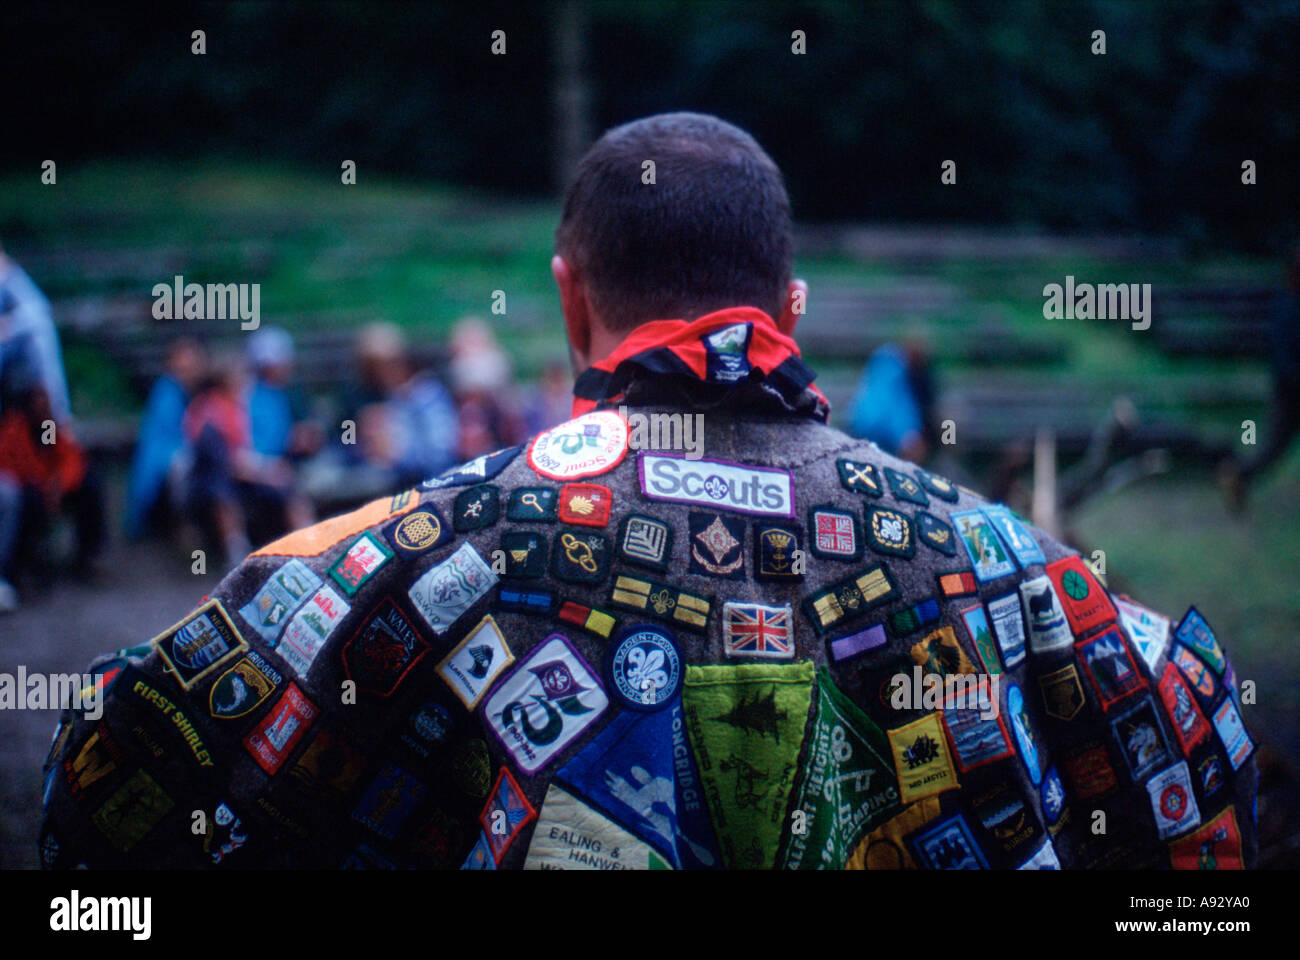 Scoutmaster wearing cape covered in badges from previous camps nr London England uk britain europe eu - Stock Image